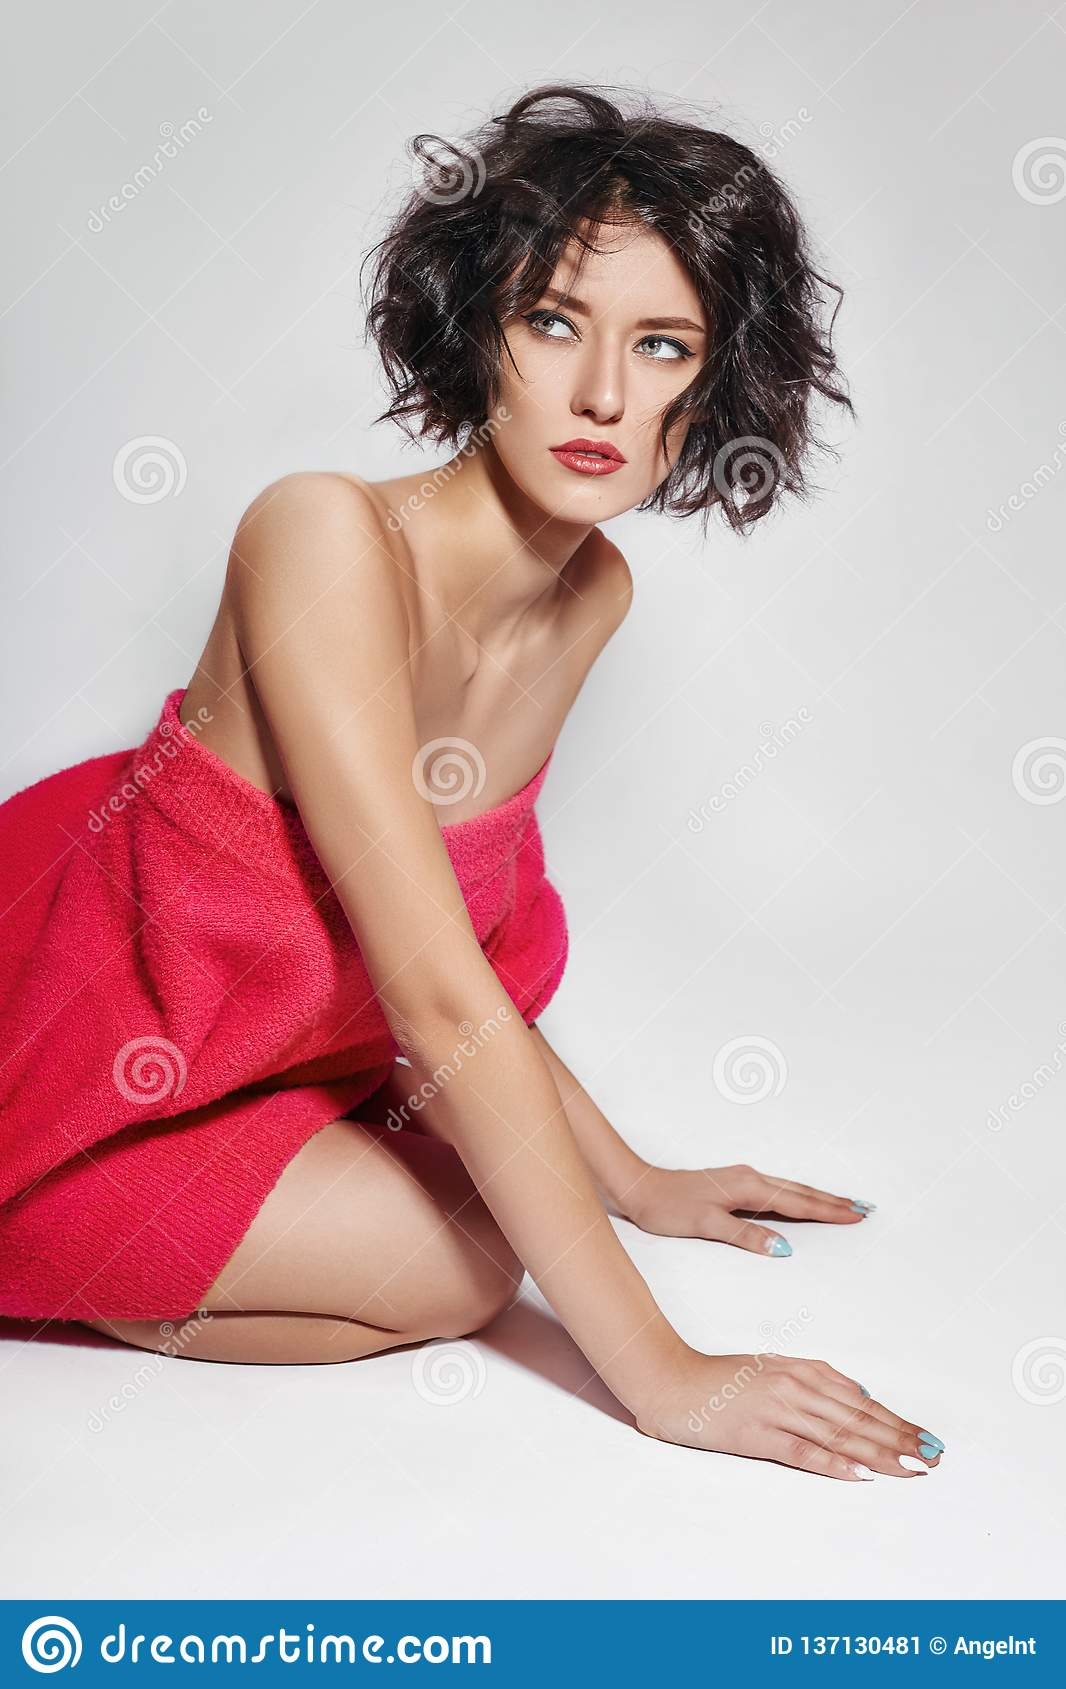 Naked woman with short hair girl posing in a red sweater on